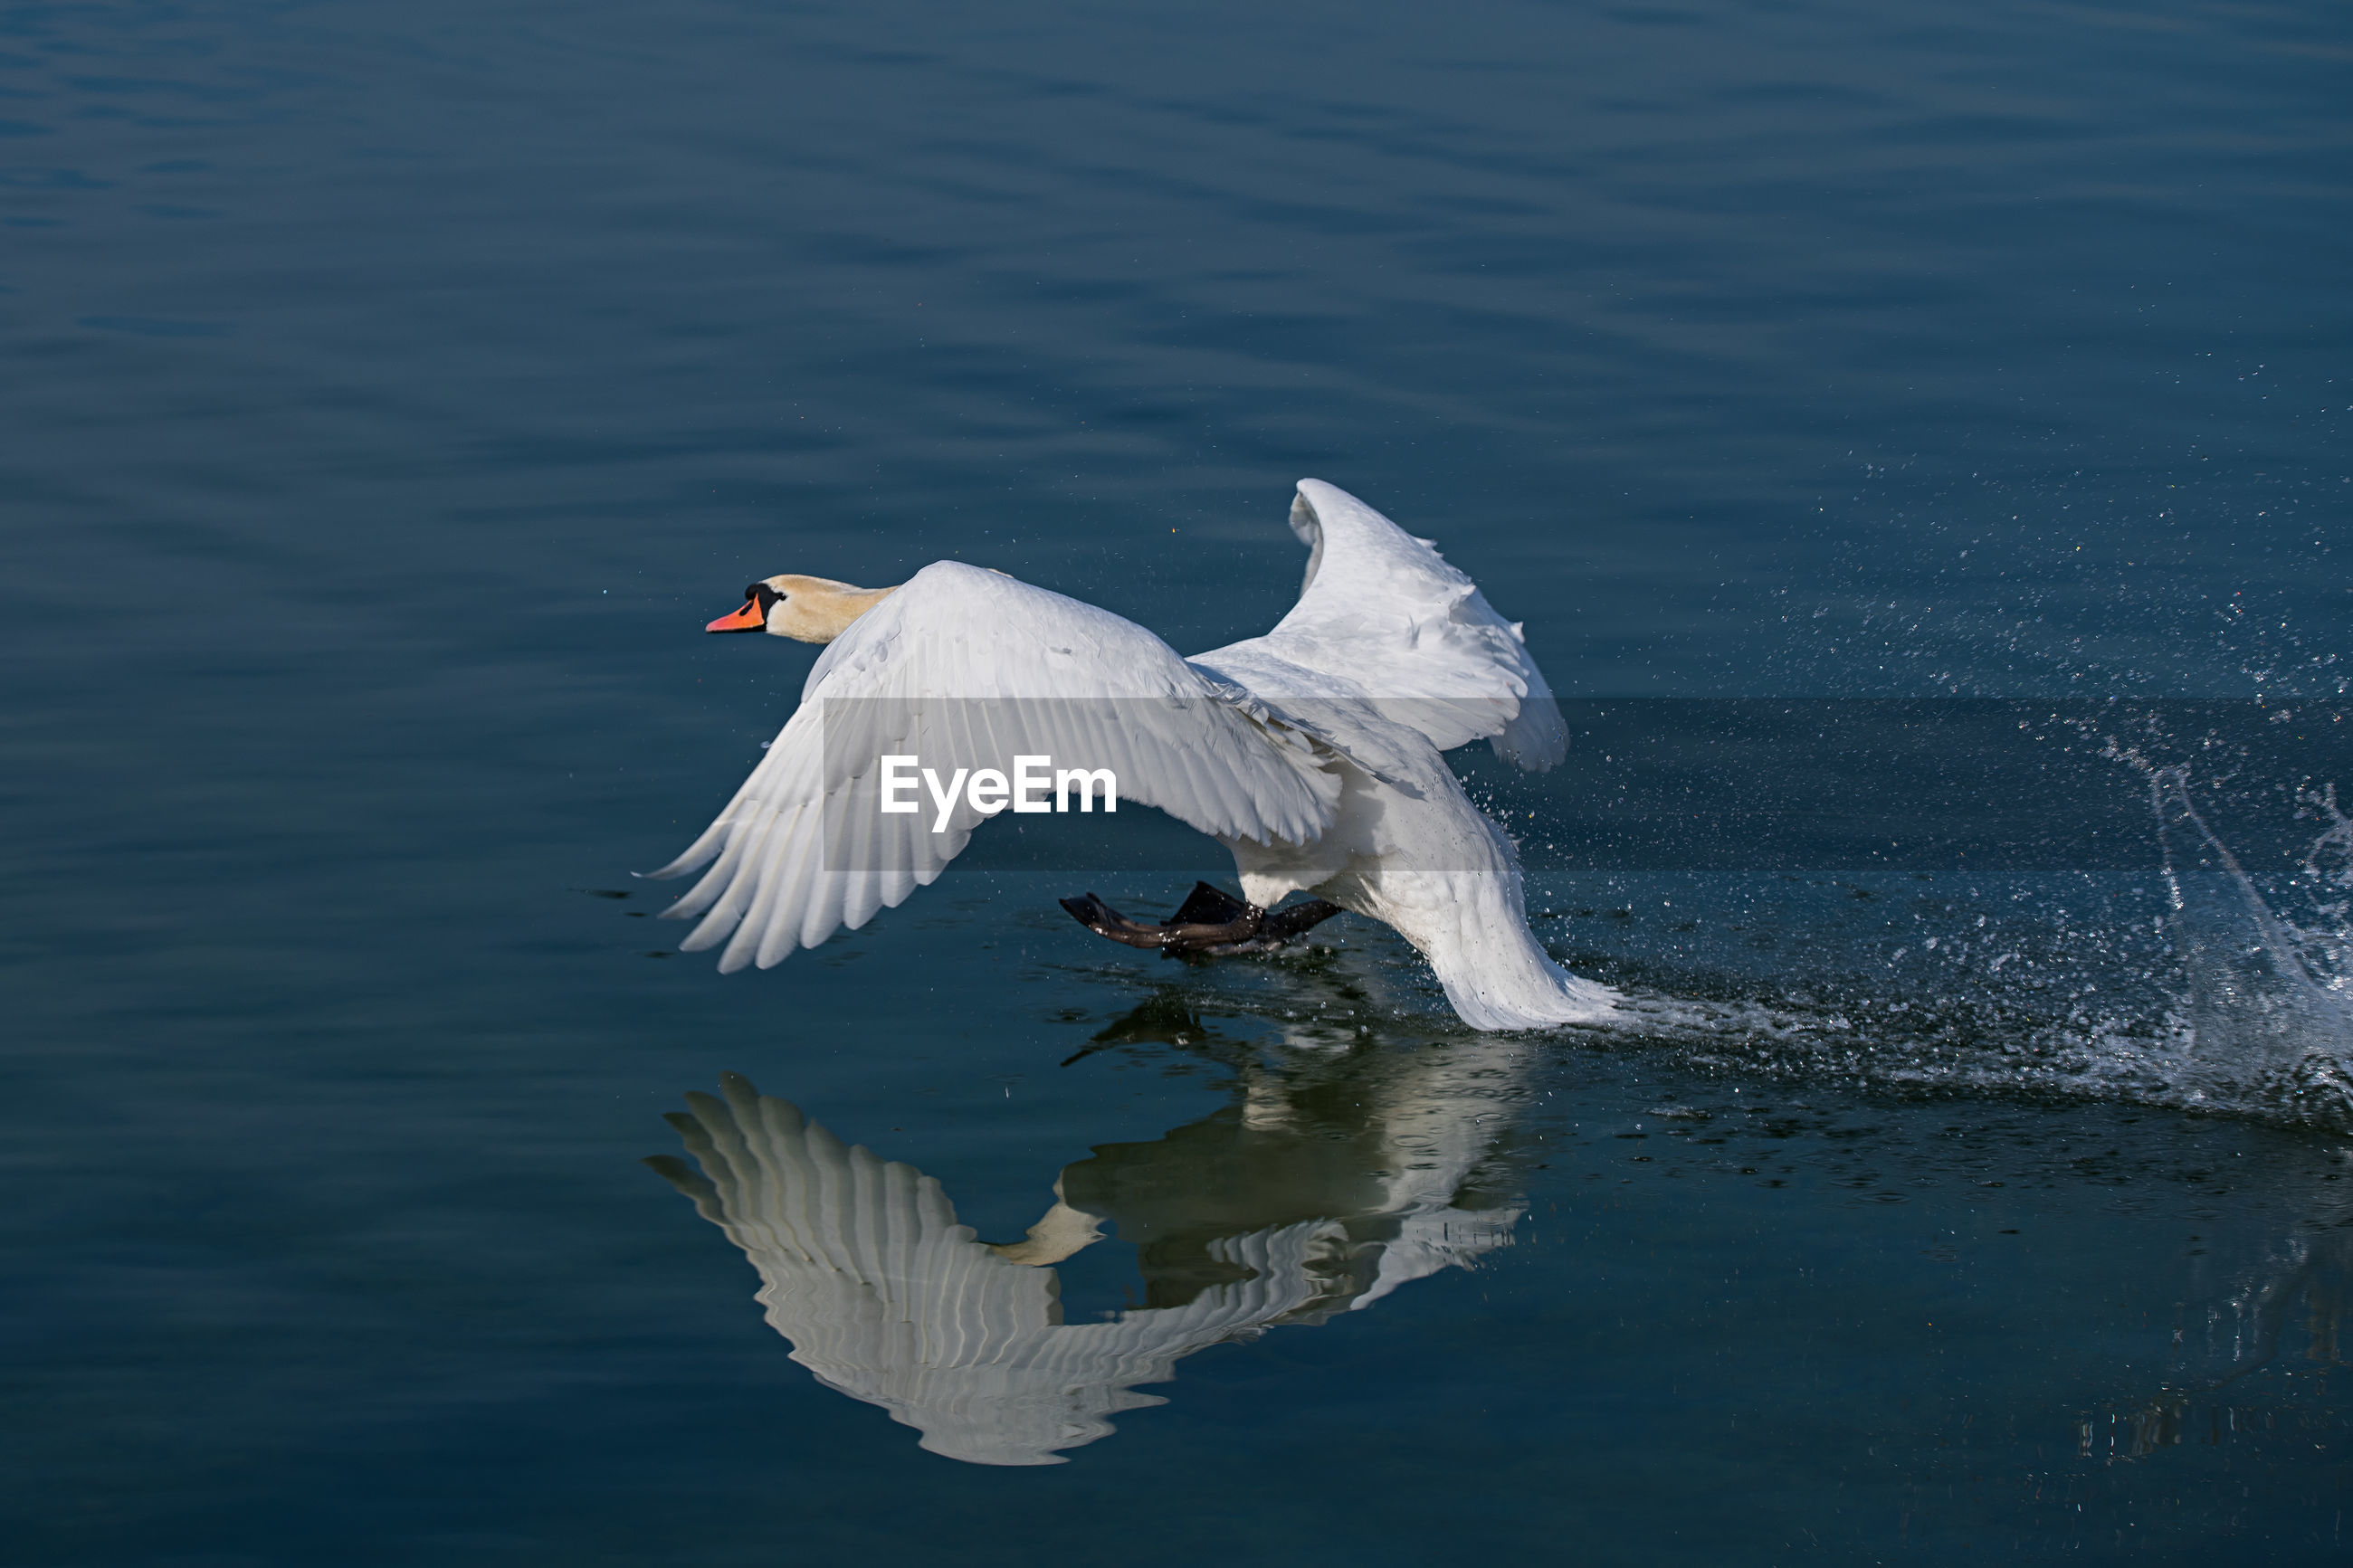 VIEW OF SWAN FLYING OVER LAKE